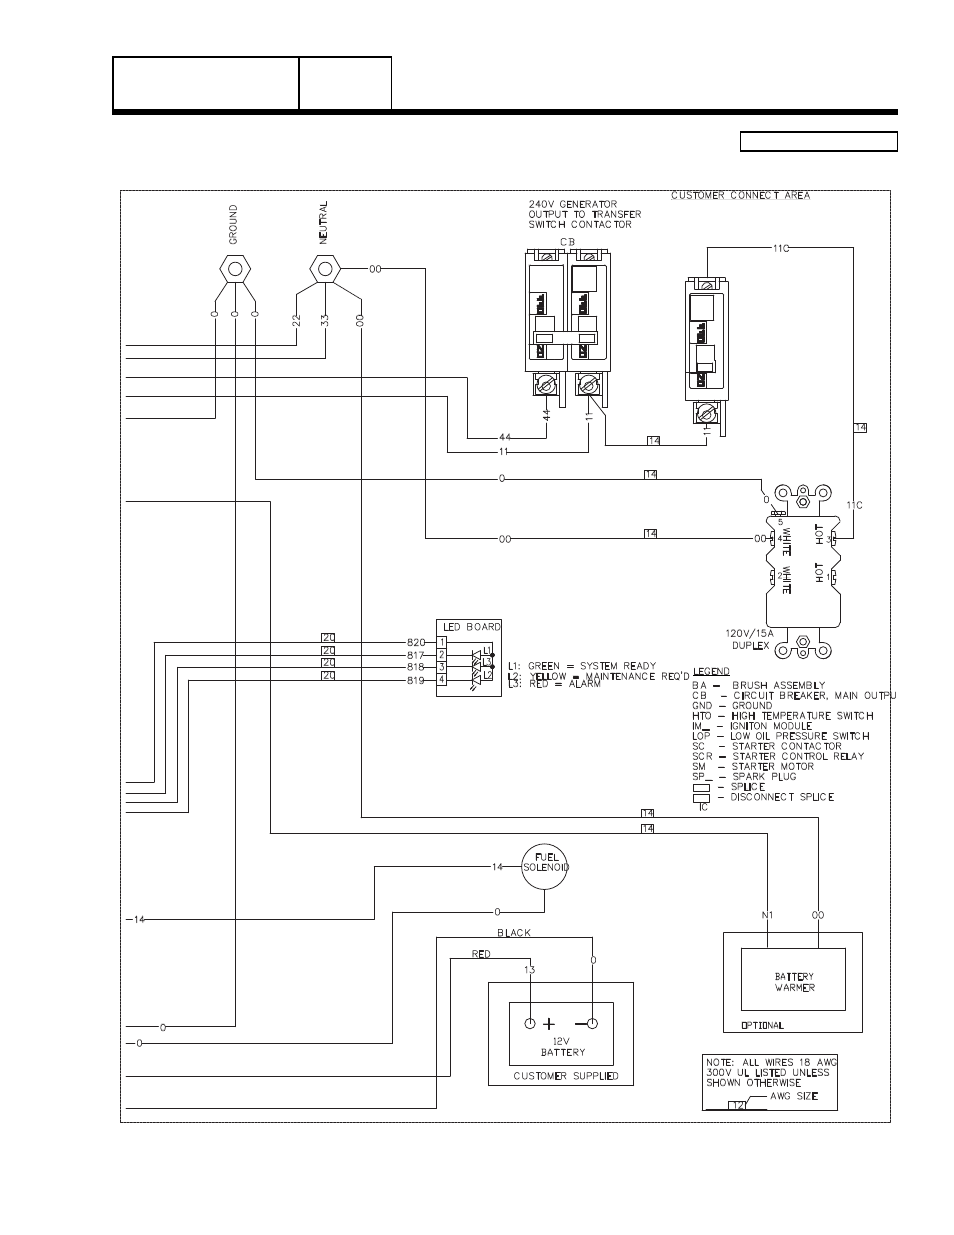 Kw Wiring Diagram Circuits Symbols Diagrams Jvc 8 Generac Trusted U2022 Rh Sivamuni Com V330bt